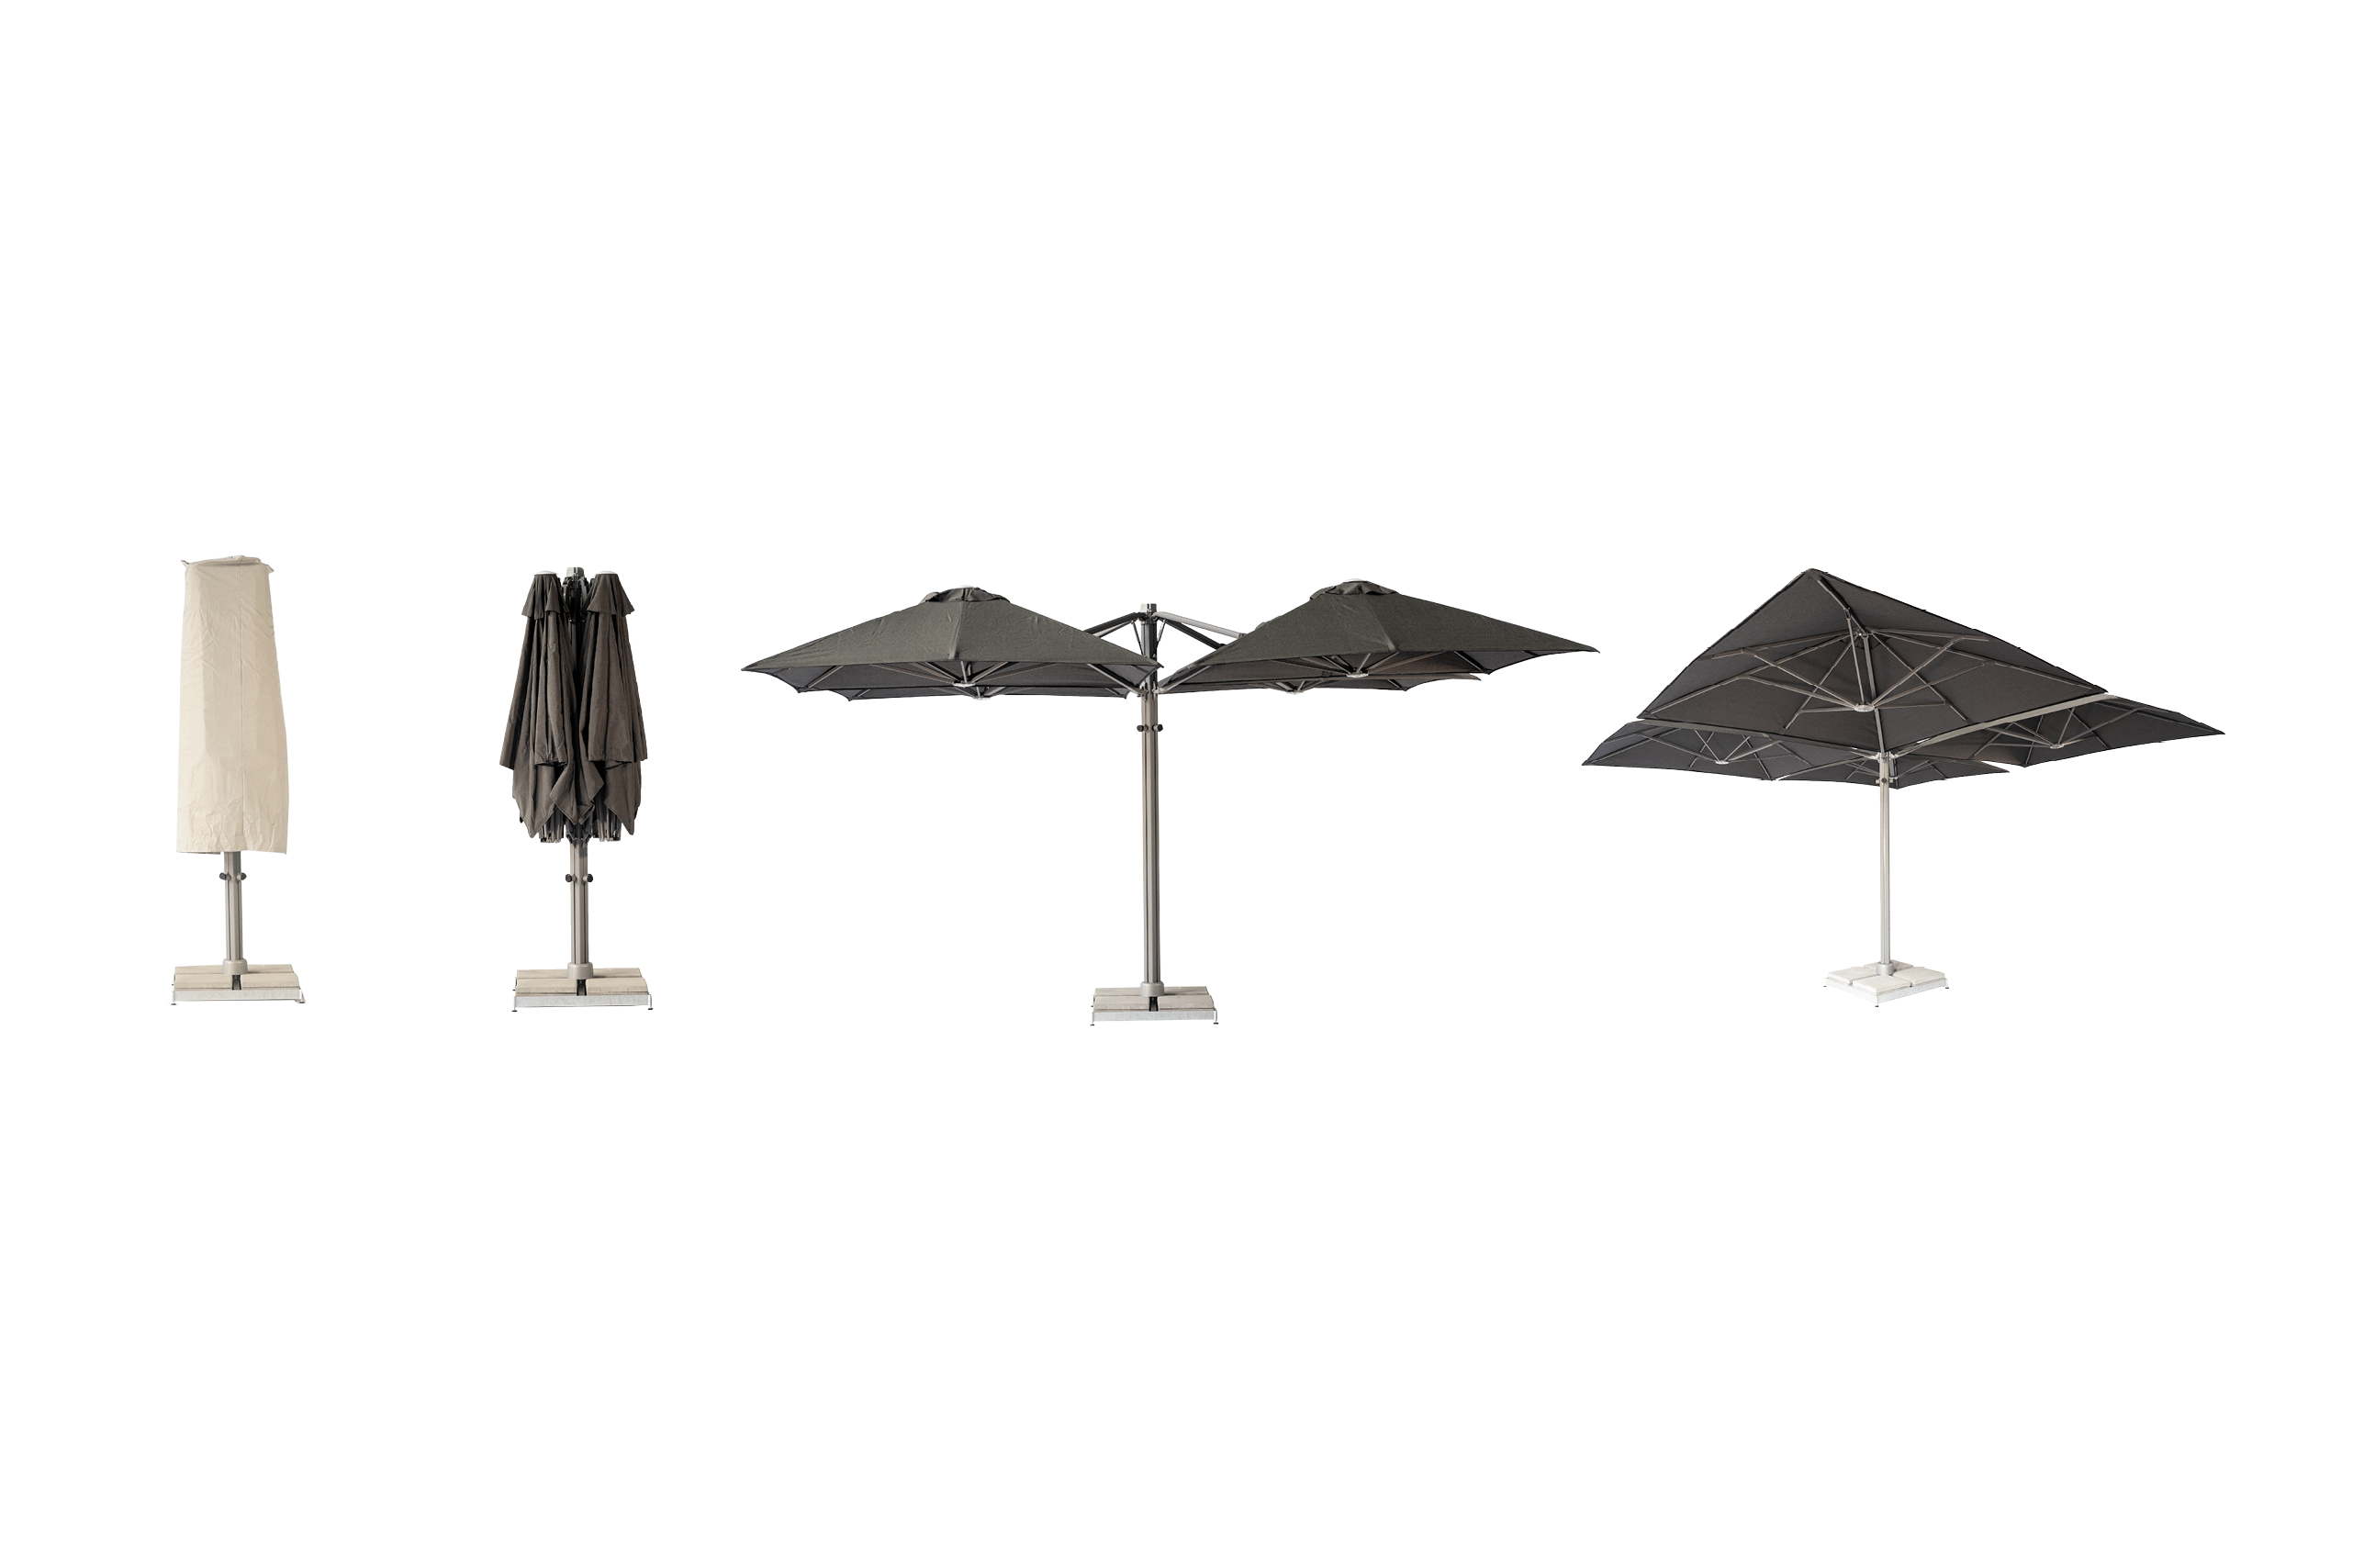 Multi-Canopy Cantilever Umbrella